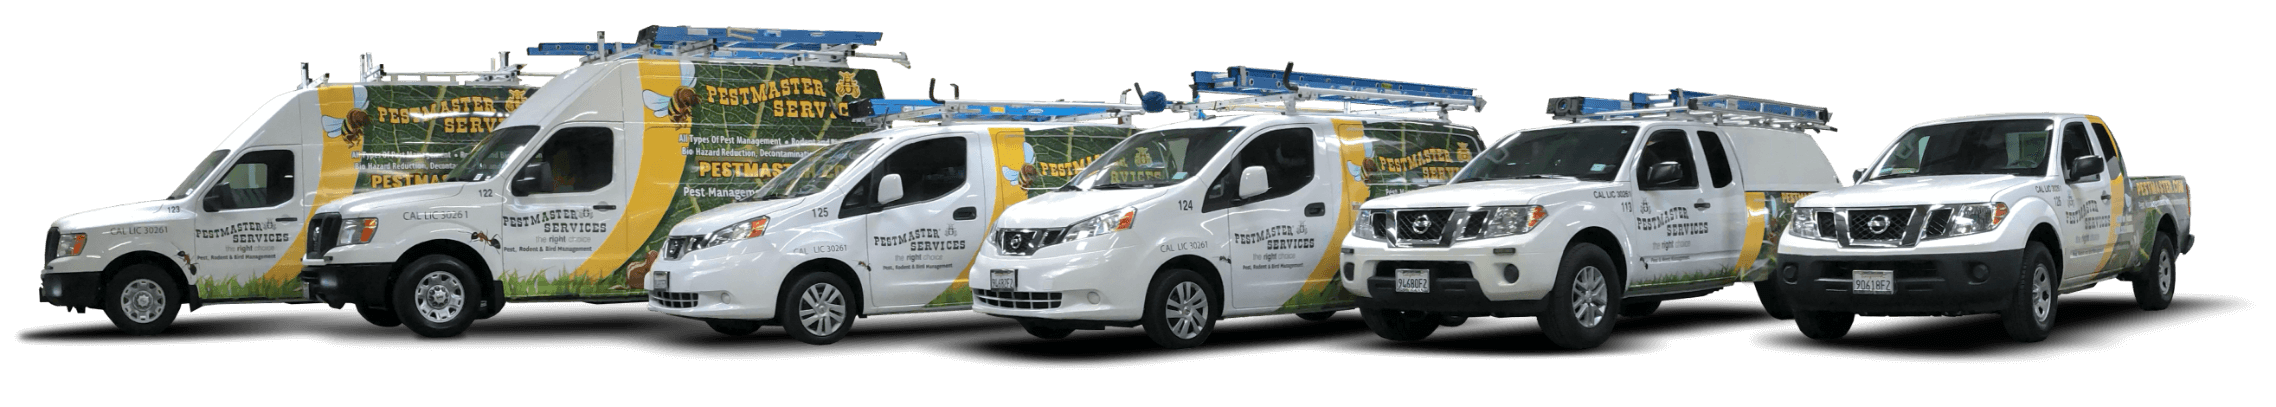 pestmaster services trucks